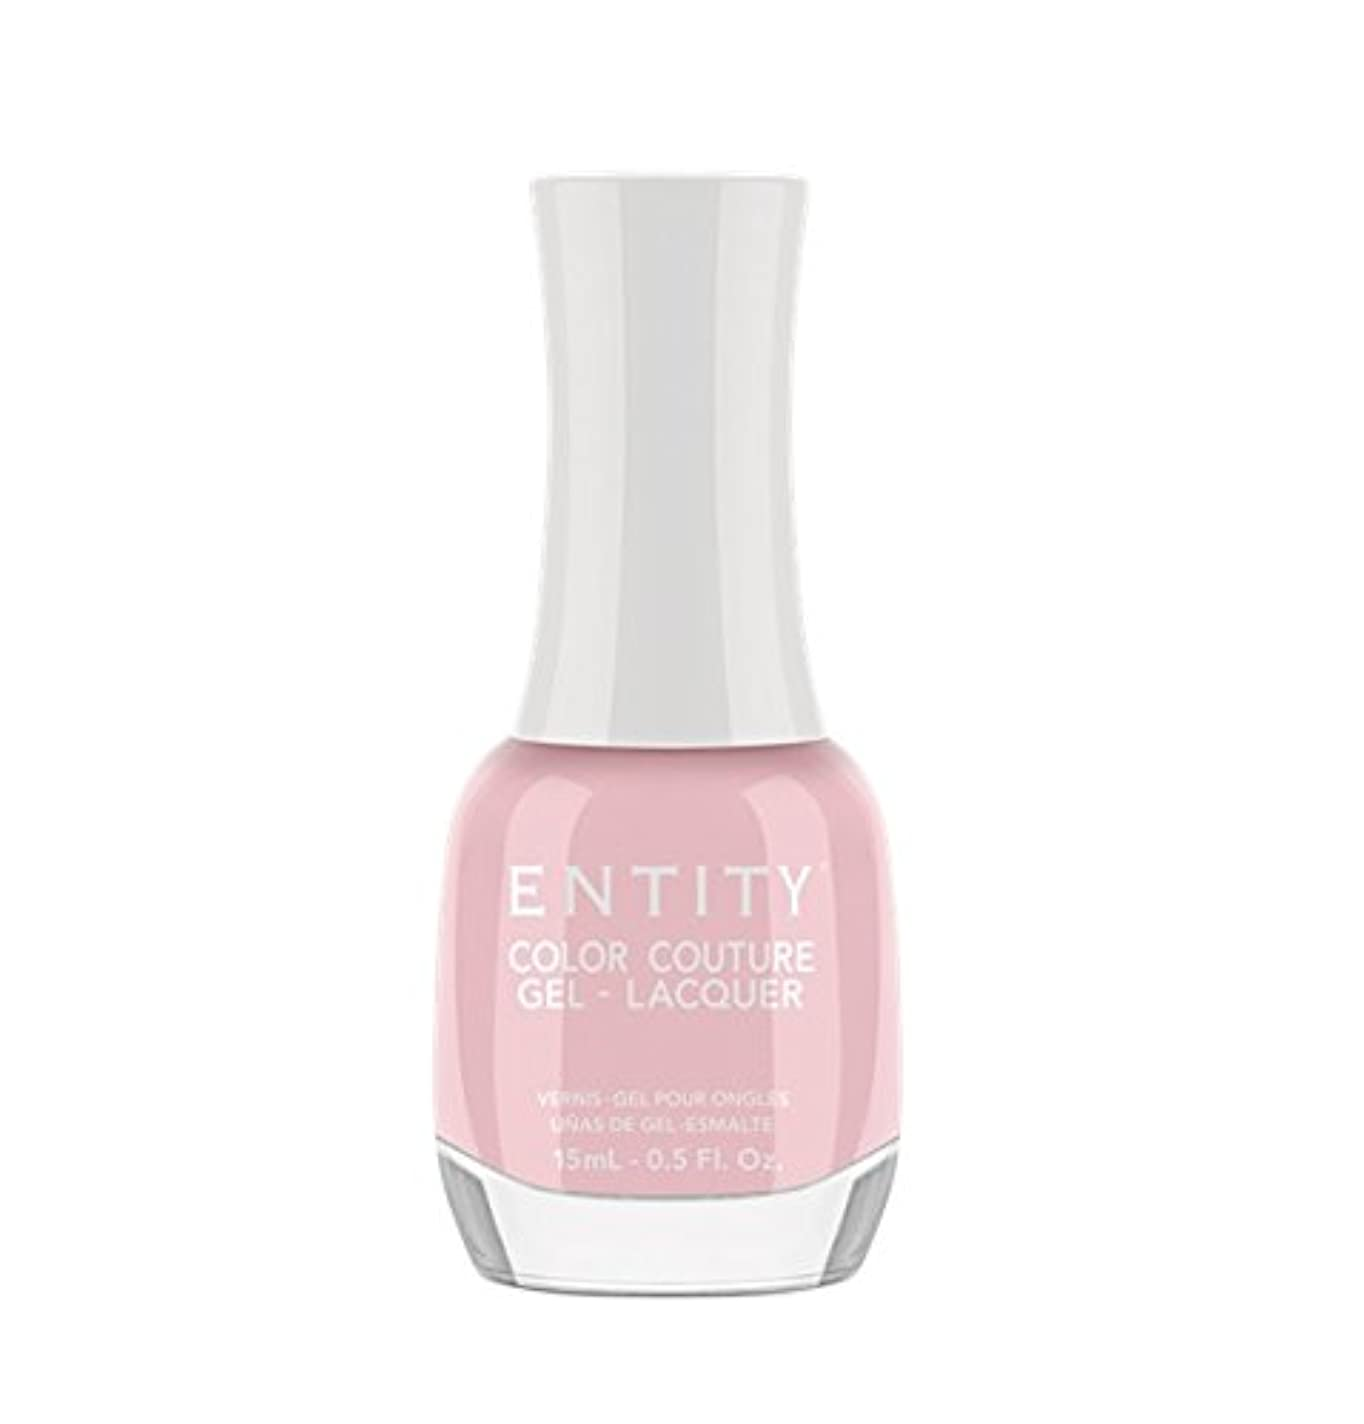 ほめるセント指定Entity Color Couture Gel-Lacquer - Boho Chic - 15 ml/0.5 oz